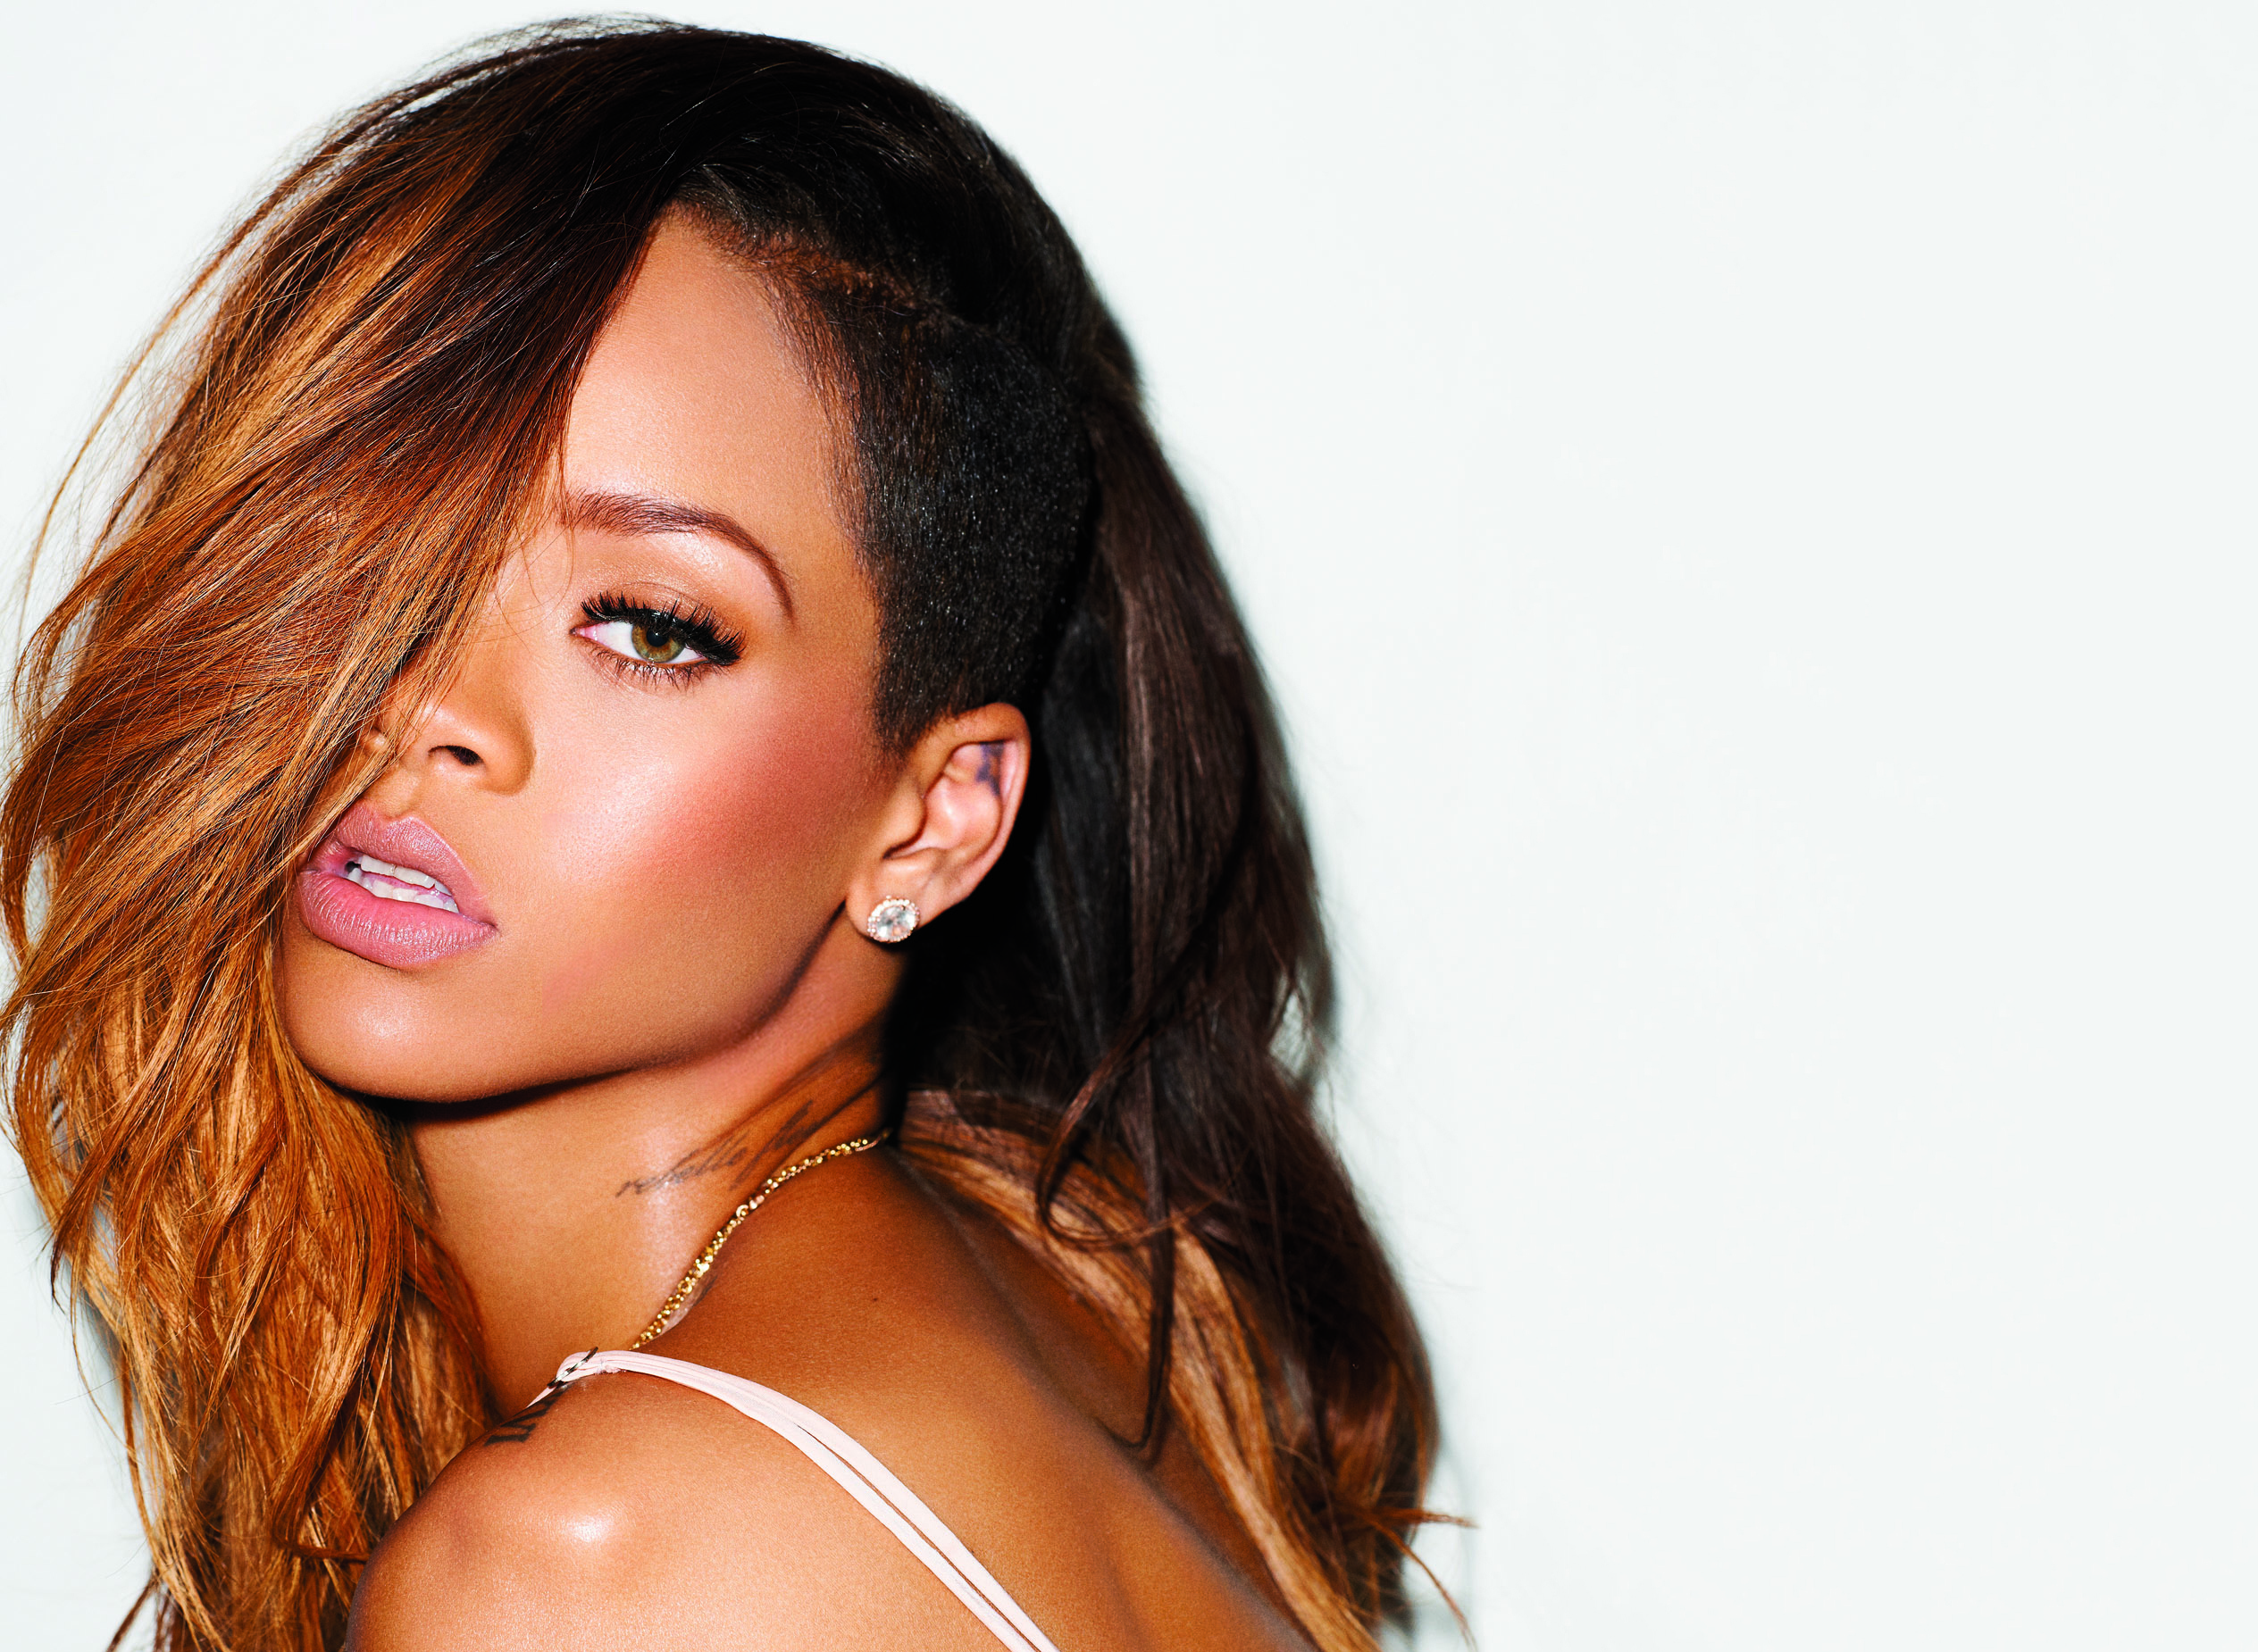 Rihanna Wallpapers, Pictures, Images Rihanna